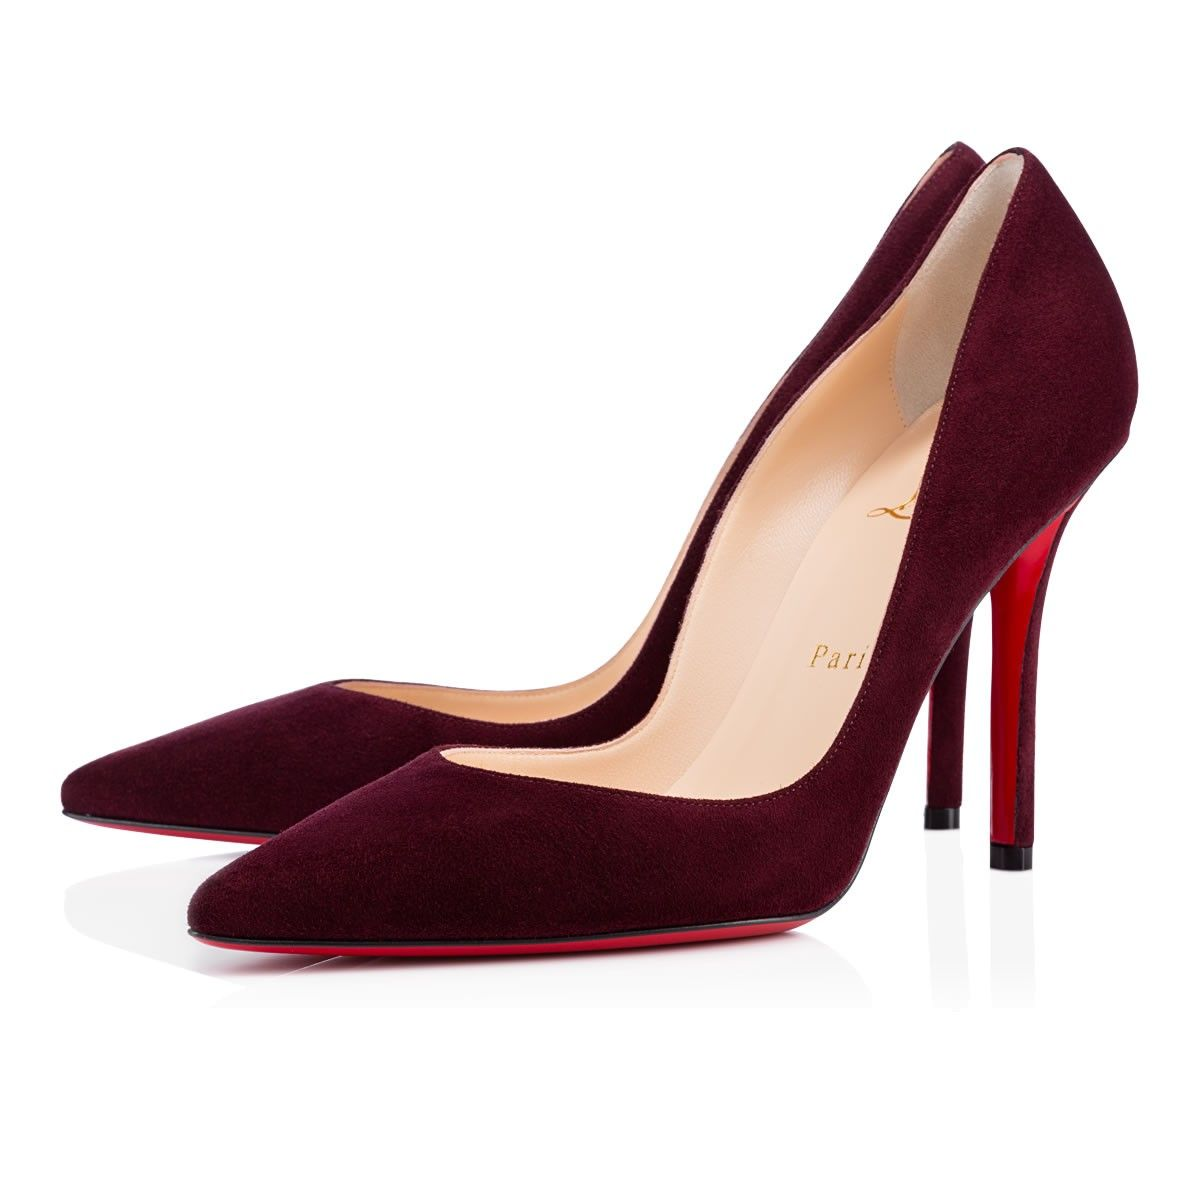 APOSTROPHY SUEDE,LIE DE VIN,Suede,Women Shoes,Louboutin.